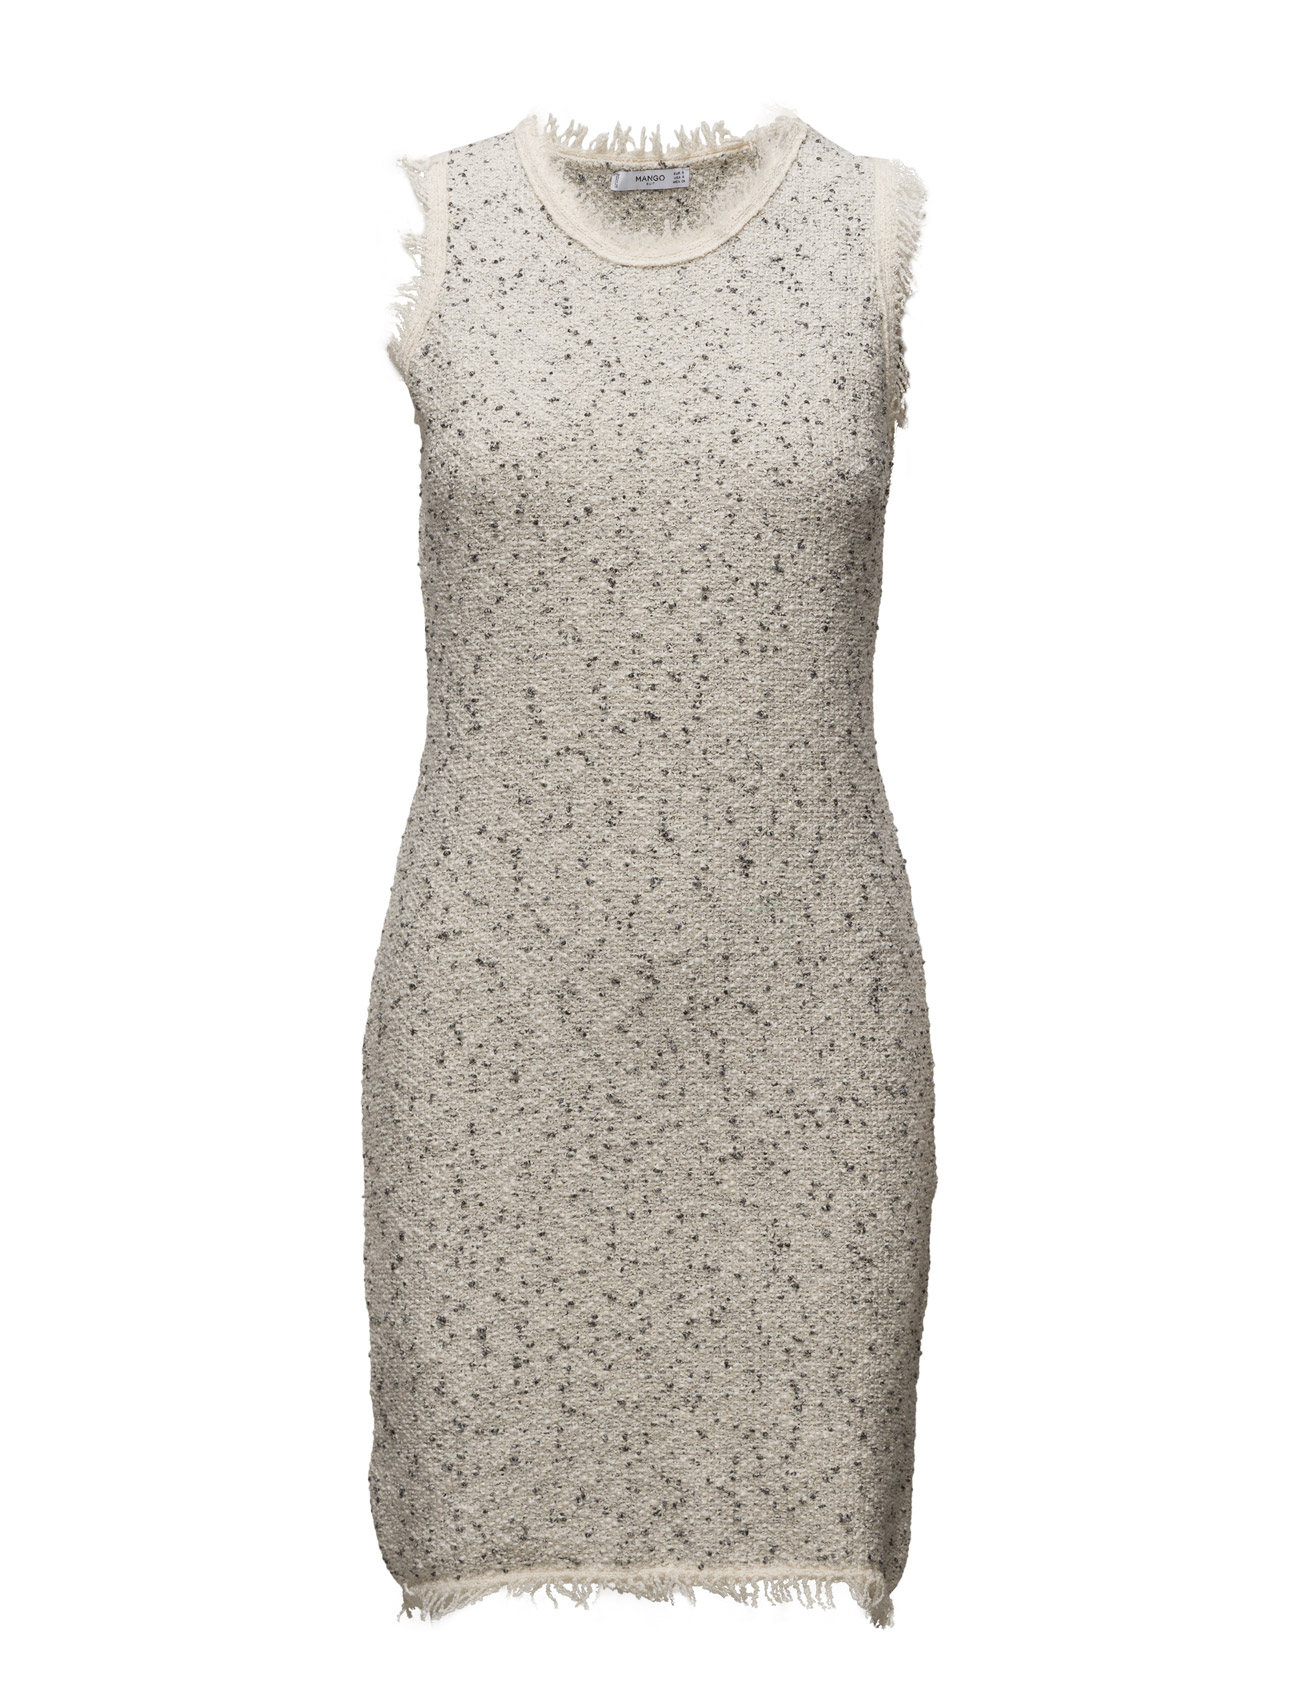 Flecked Dress Mango Striktøj til Kvinder i Light Beige